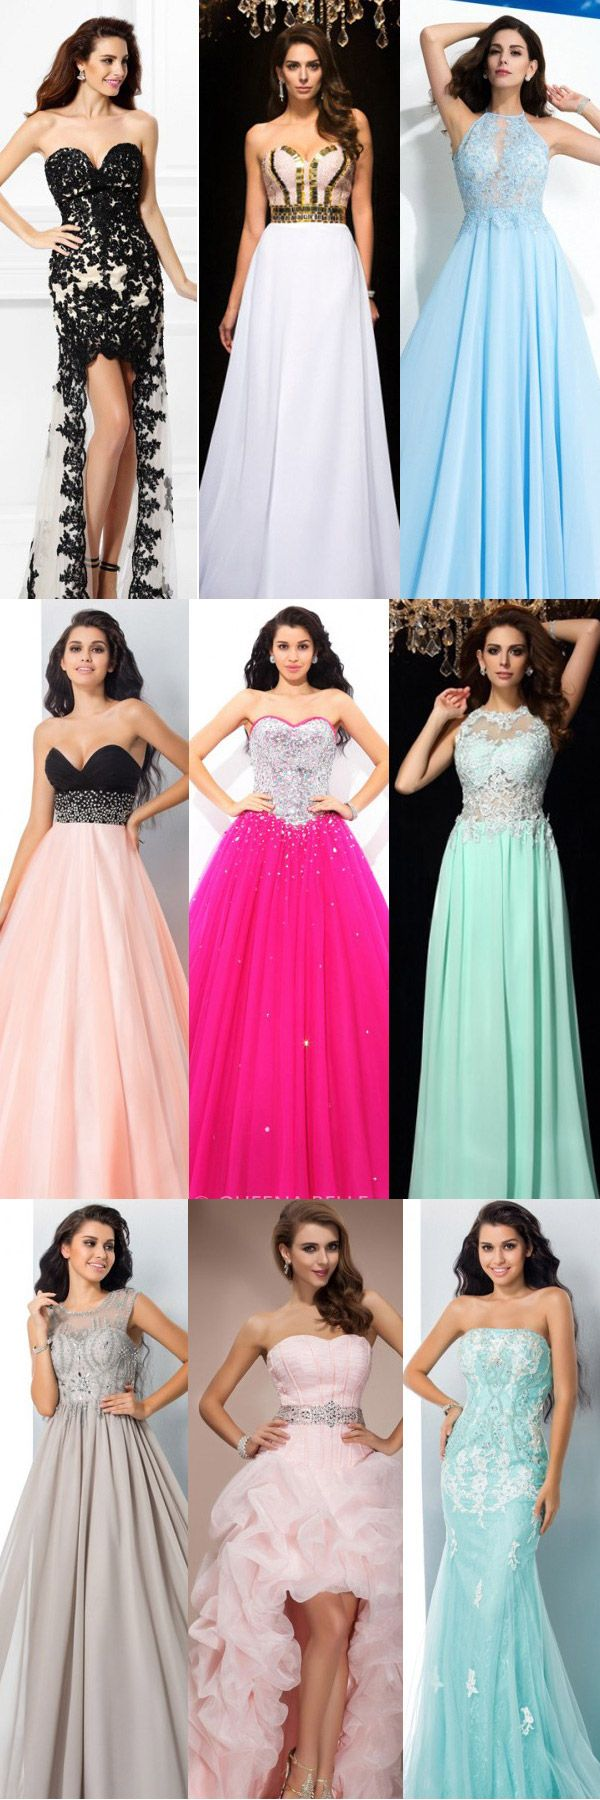 QueenaBelle Prom Dresses 2016